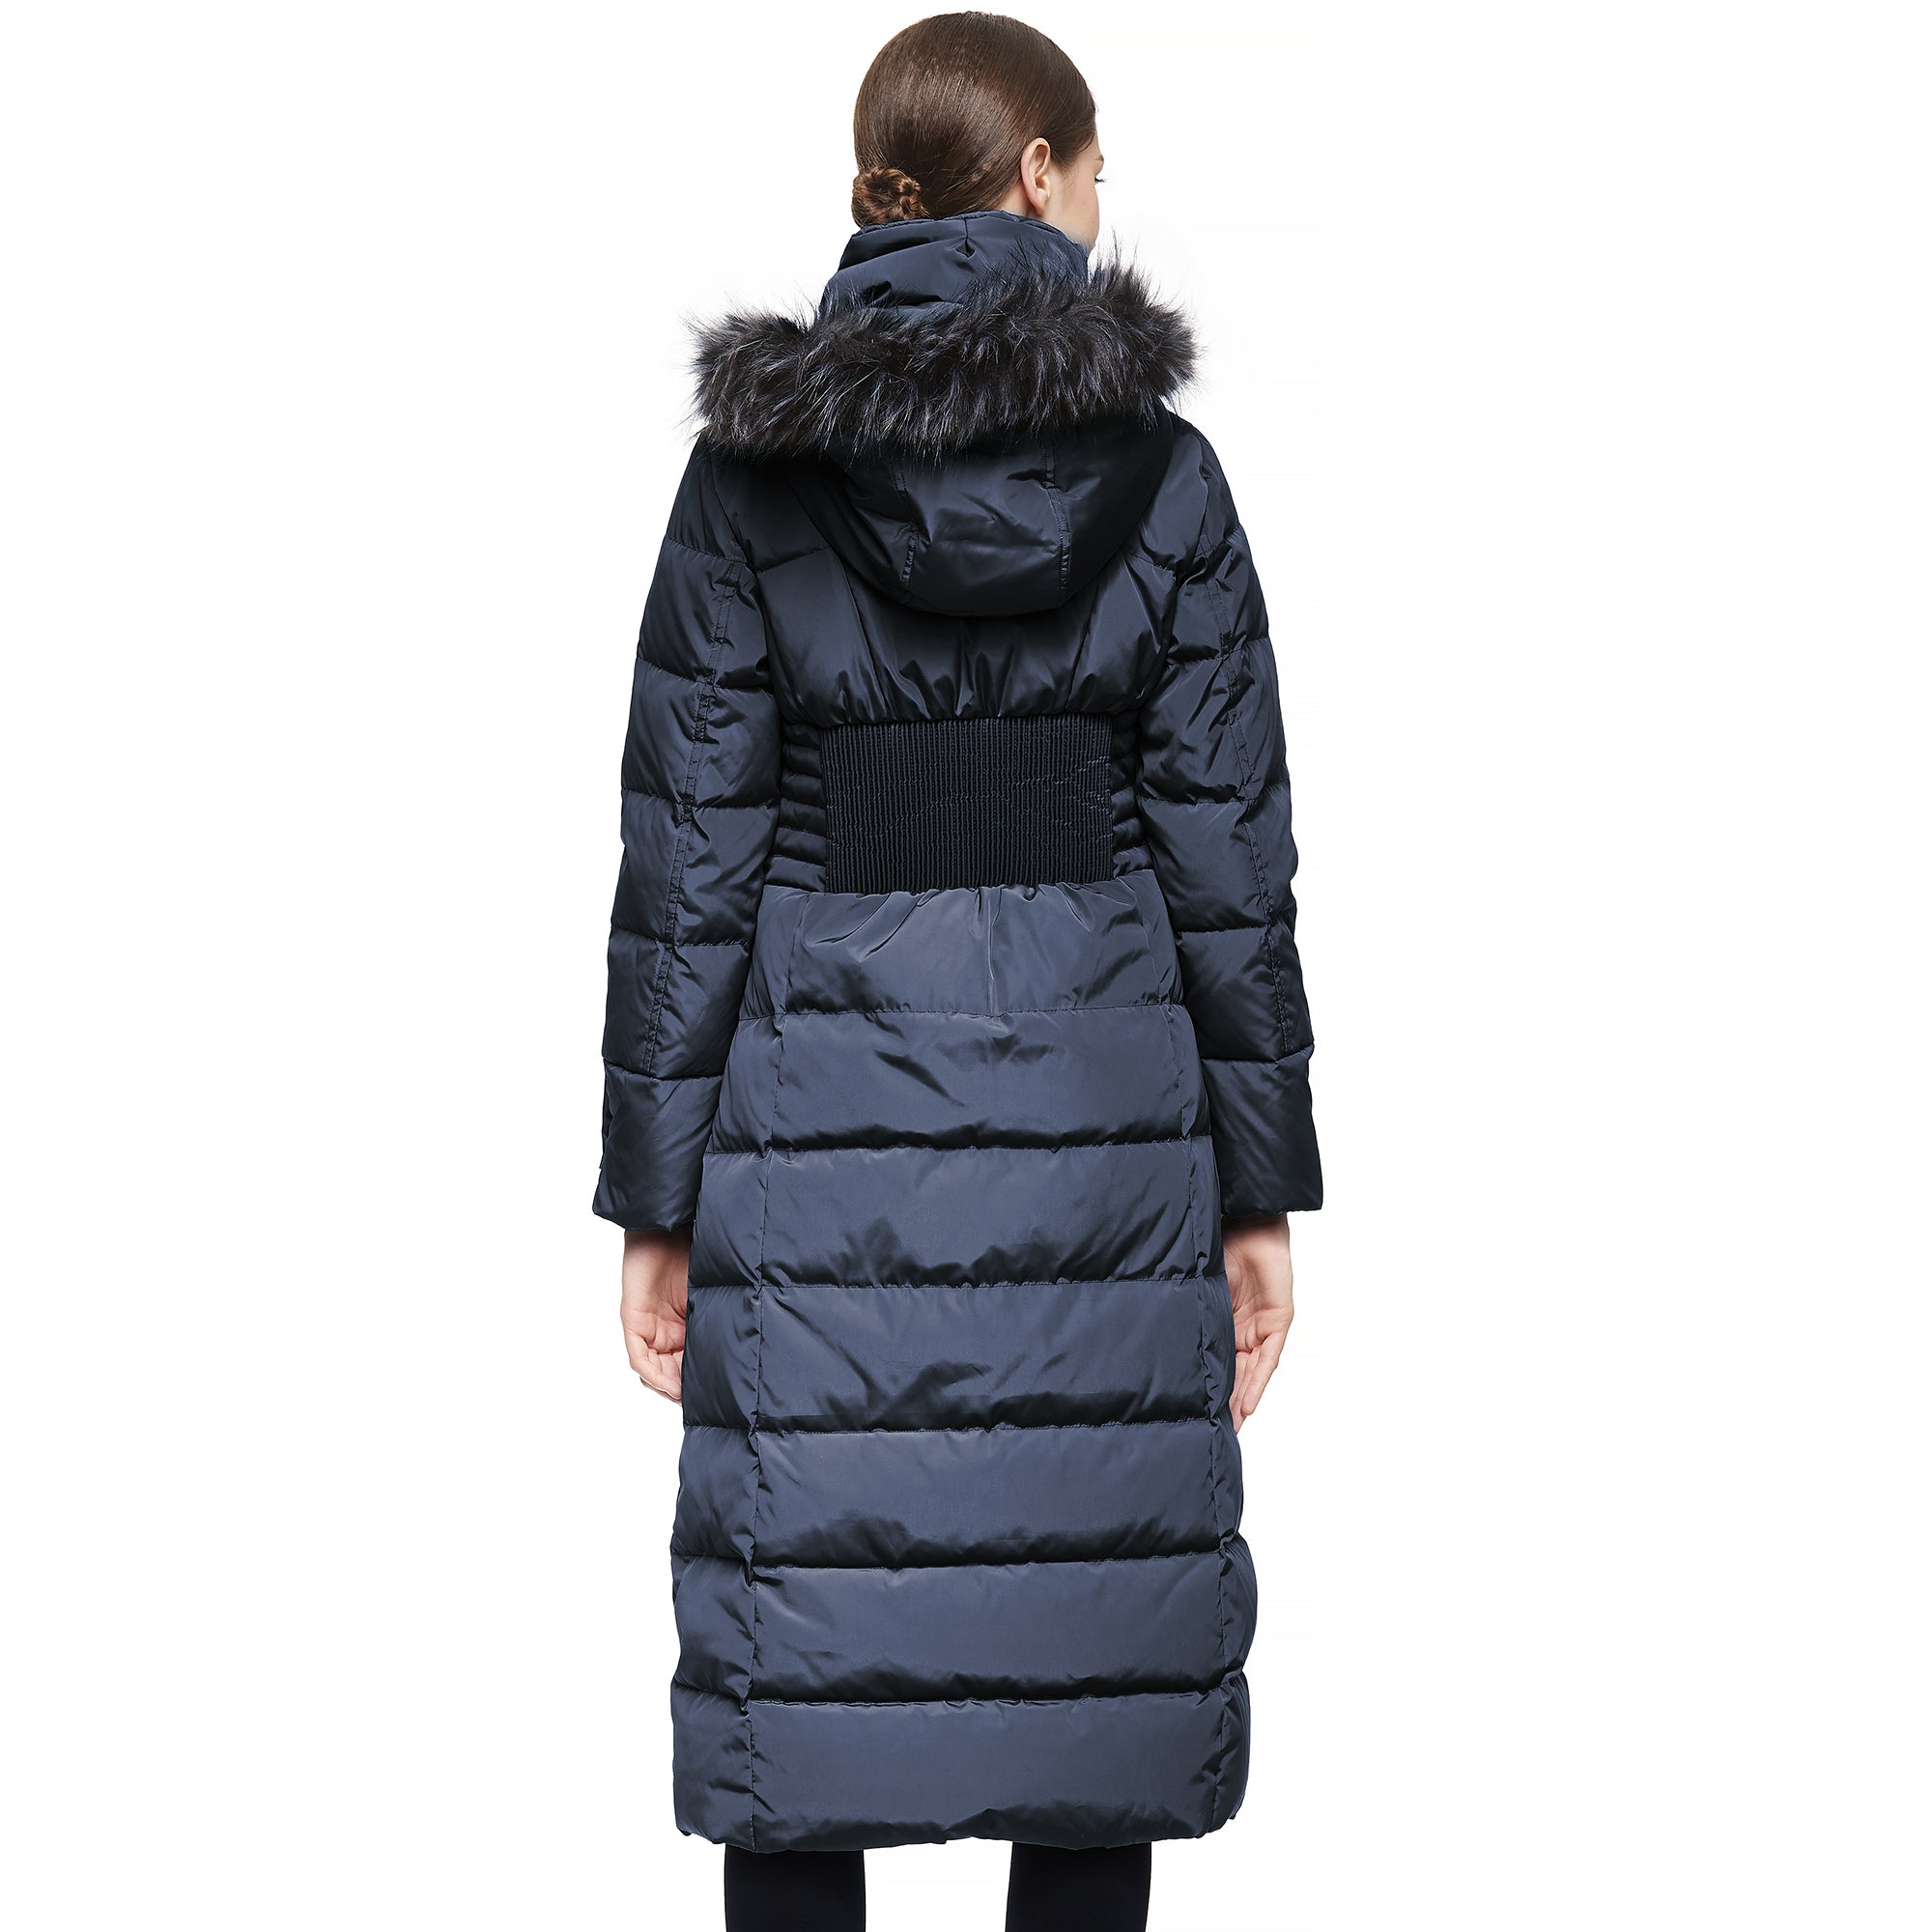 Orolay Women Warm Down Jacket with Hood Fur Raglan Sleeve Coat YRF8025Q